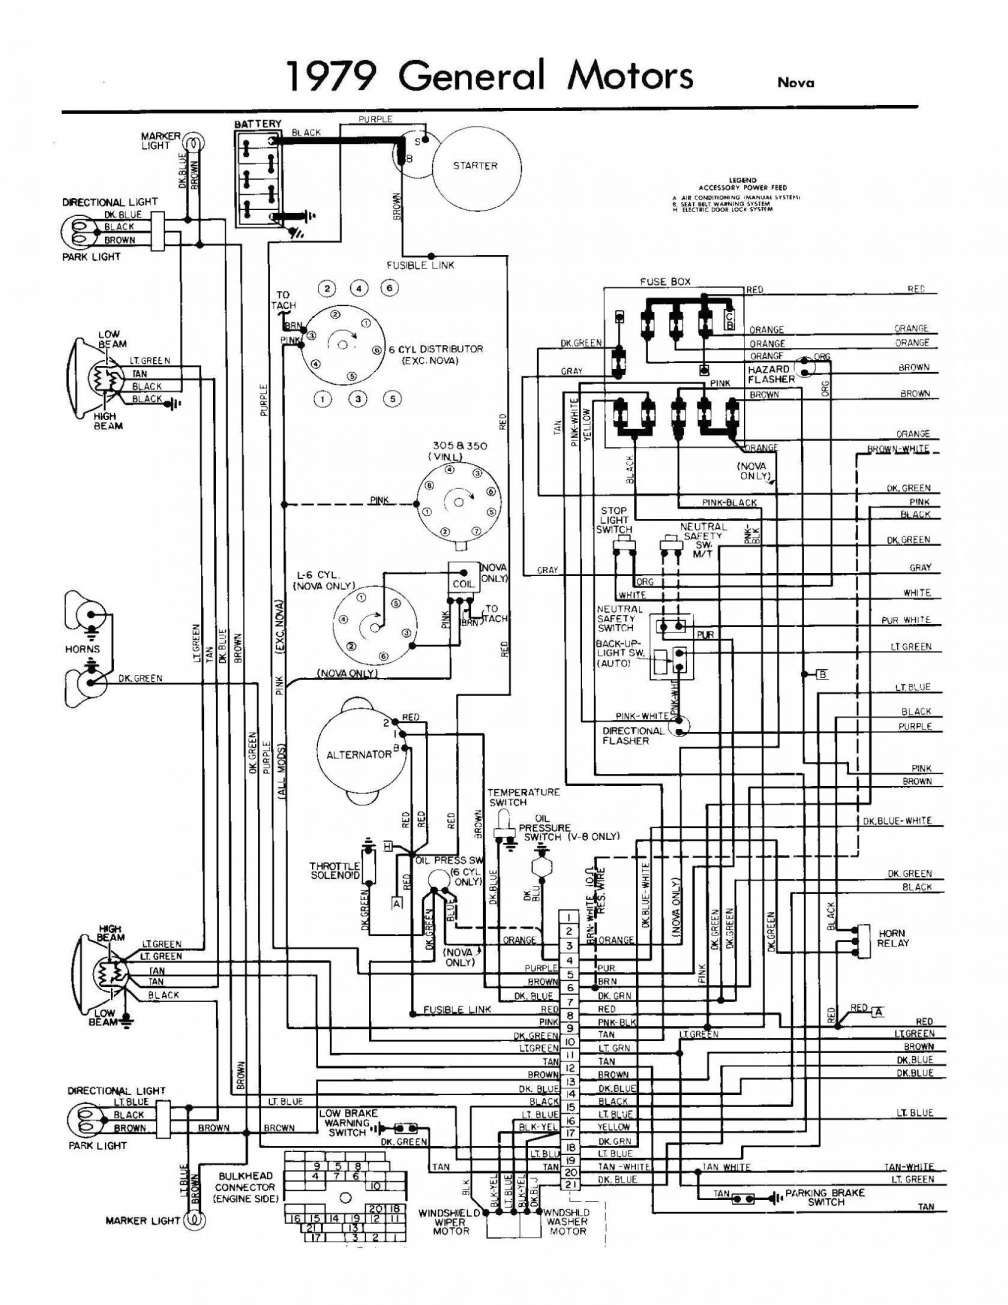 12+ 79 Chevy Truck Headlight Wiring Diagram1979 chevy